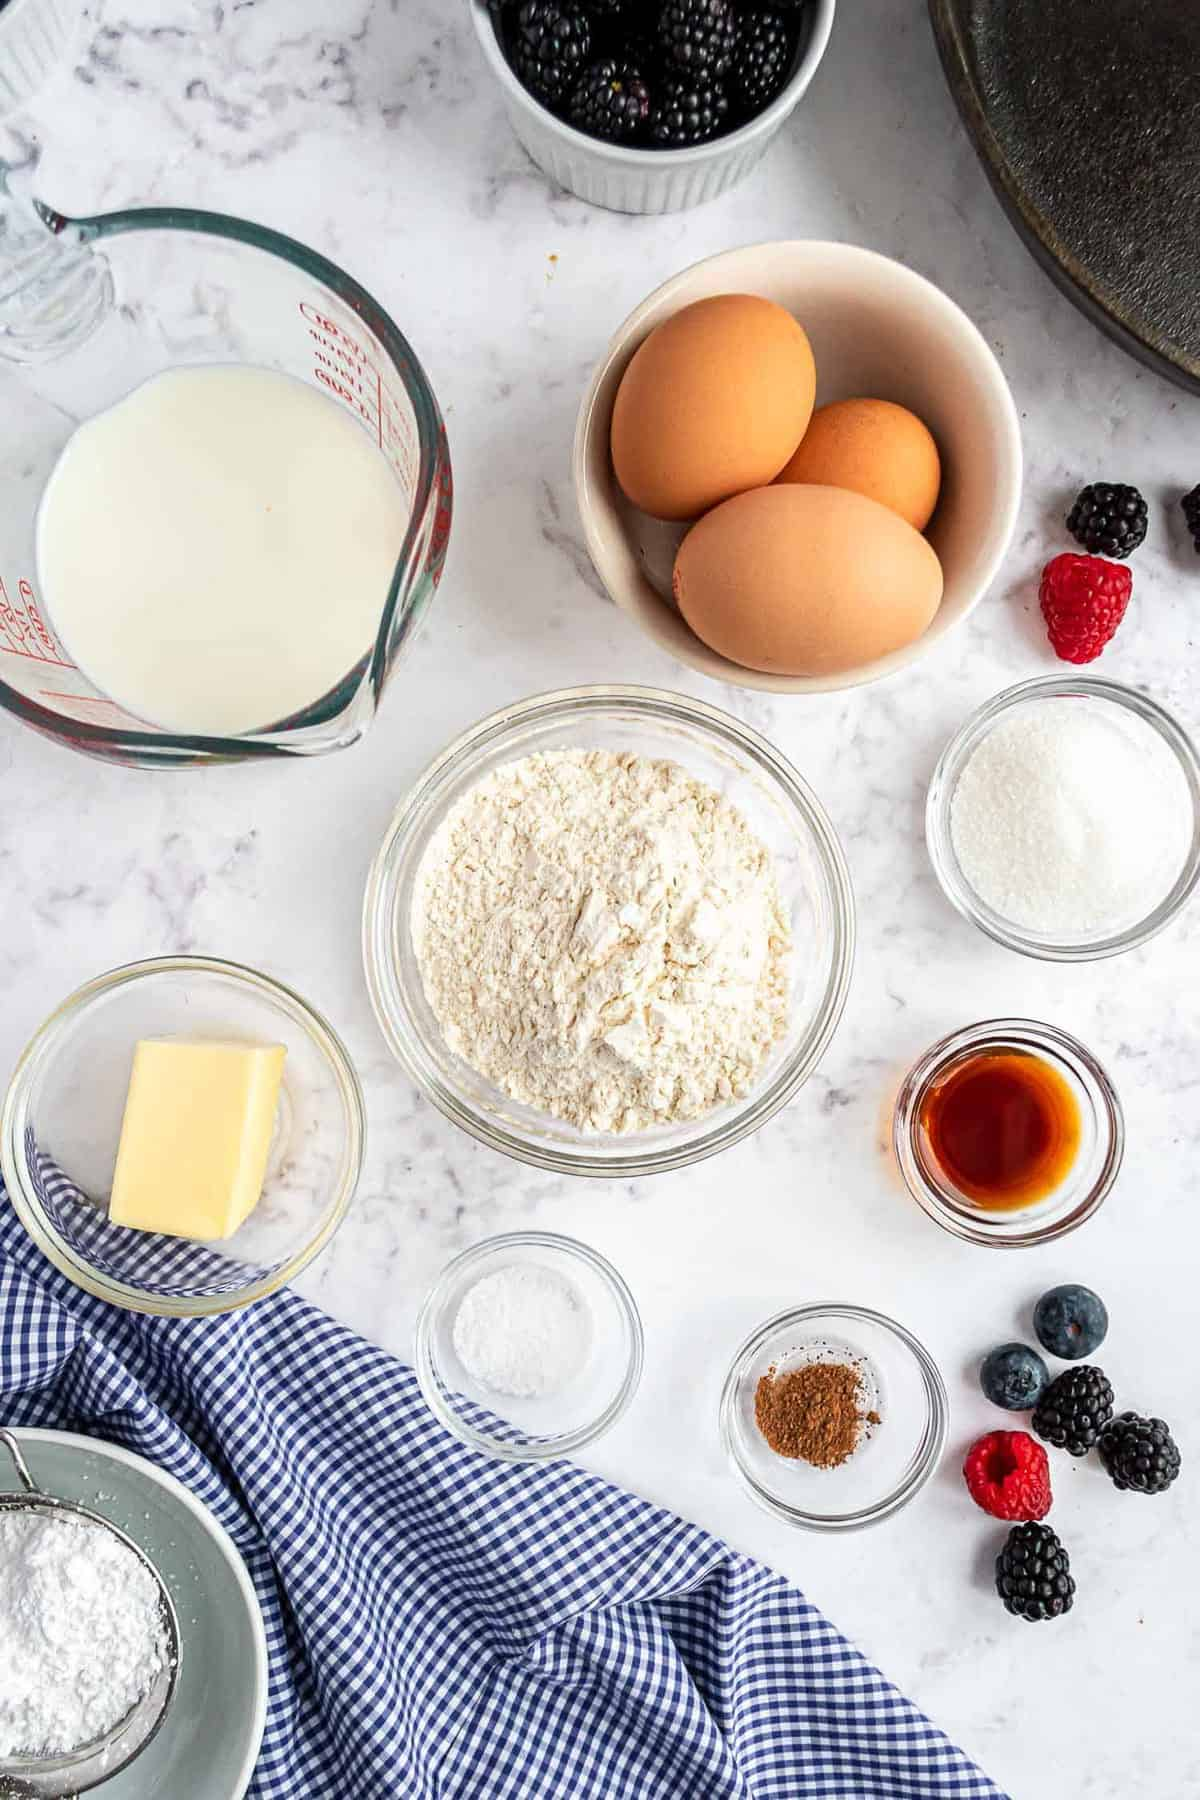 Overhead view of ingredients: flour, milk, eggs, vanilla, butter, and more.